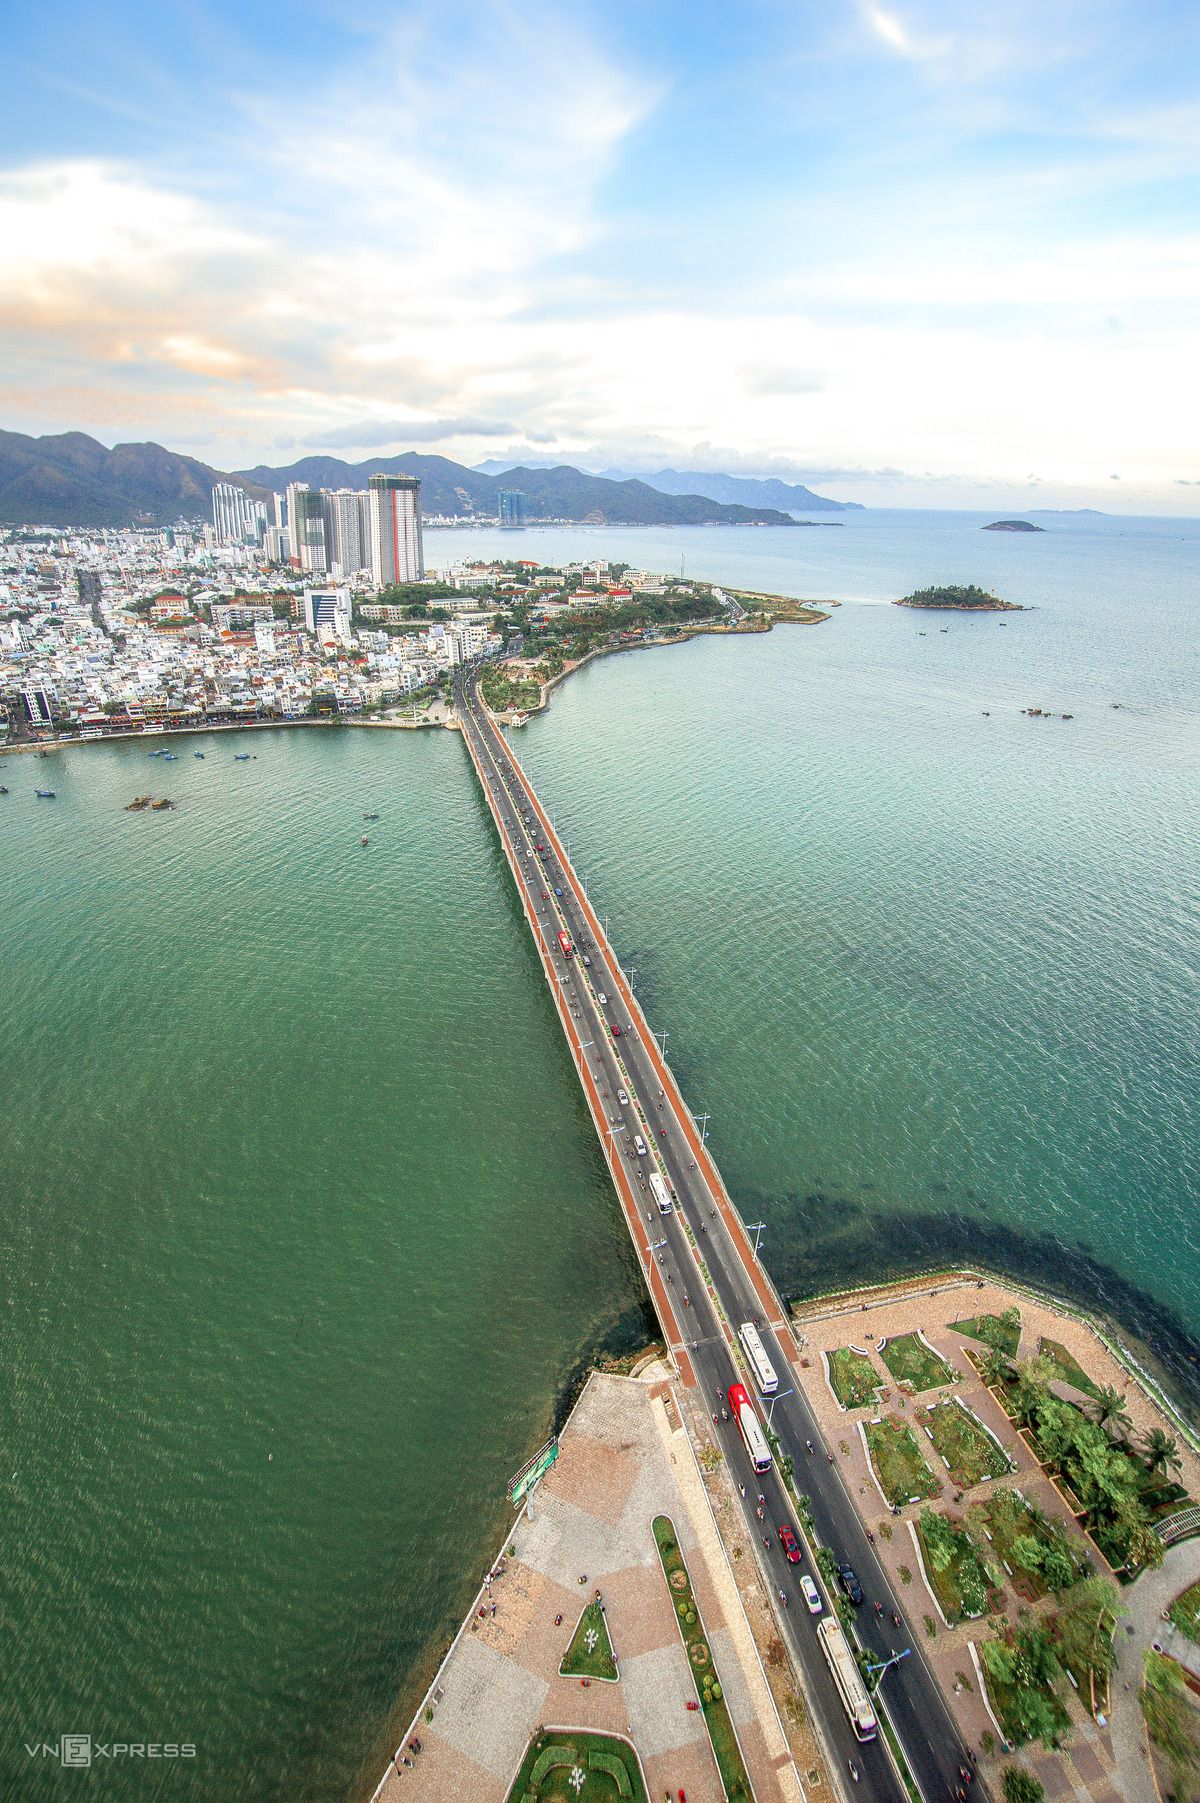 Bird-eye view accentuates charming beauty of Nha Trang coastal city